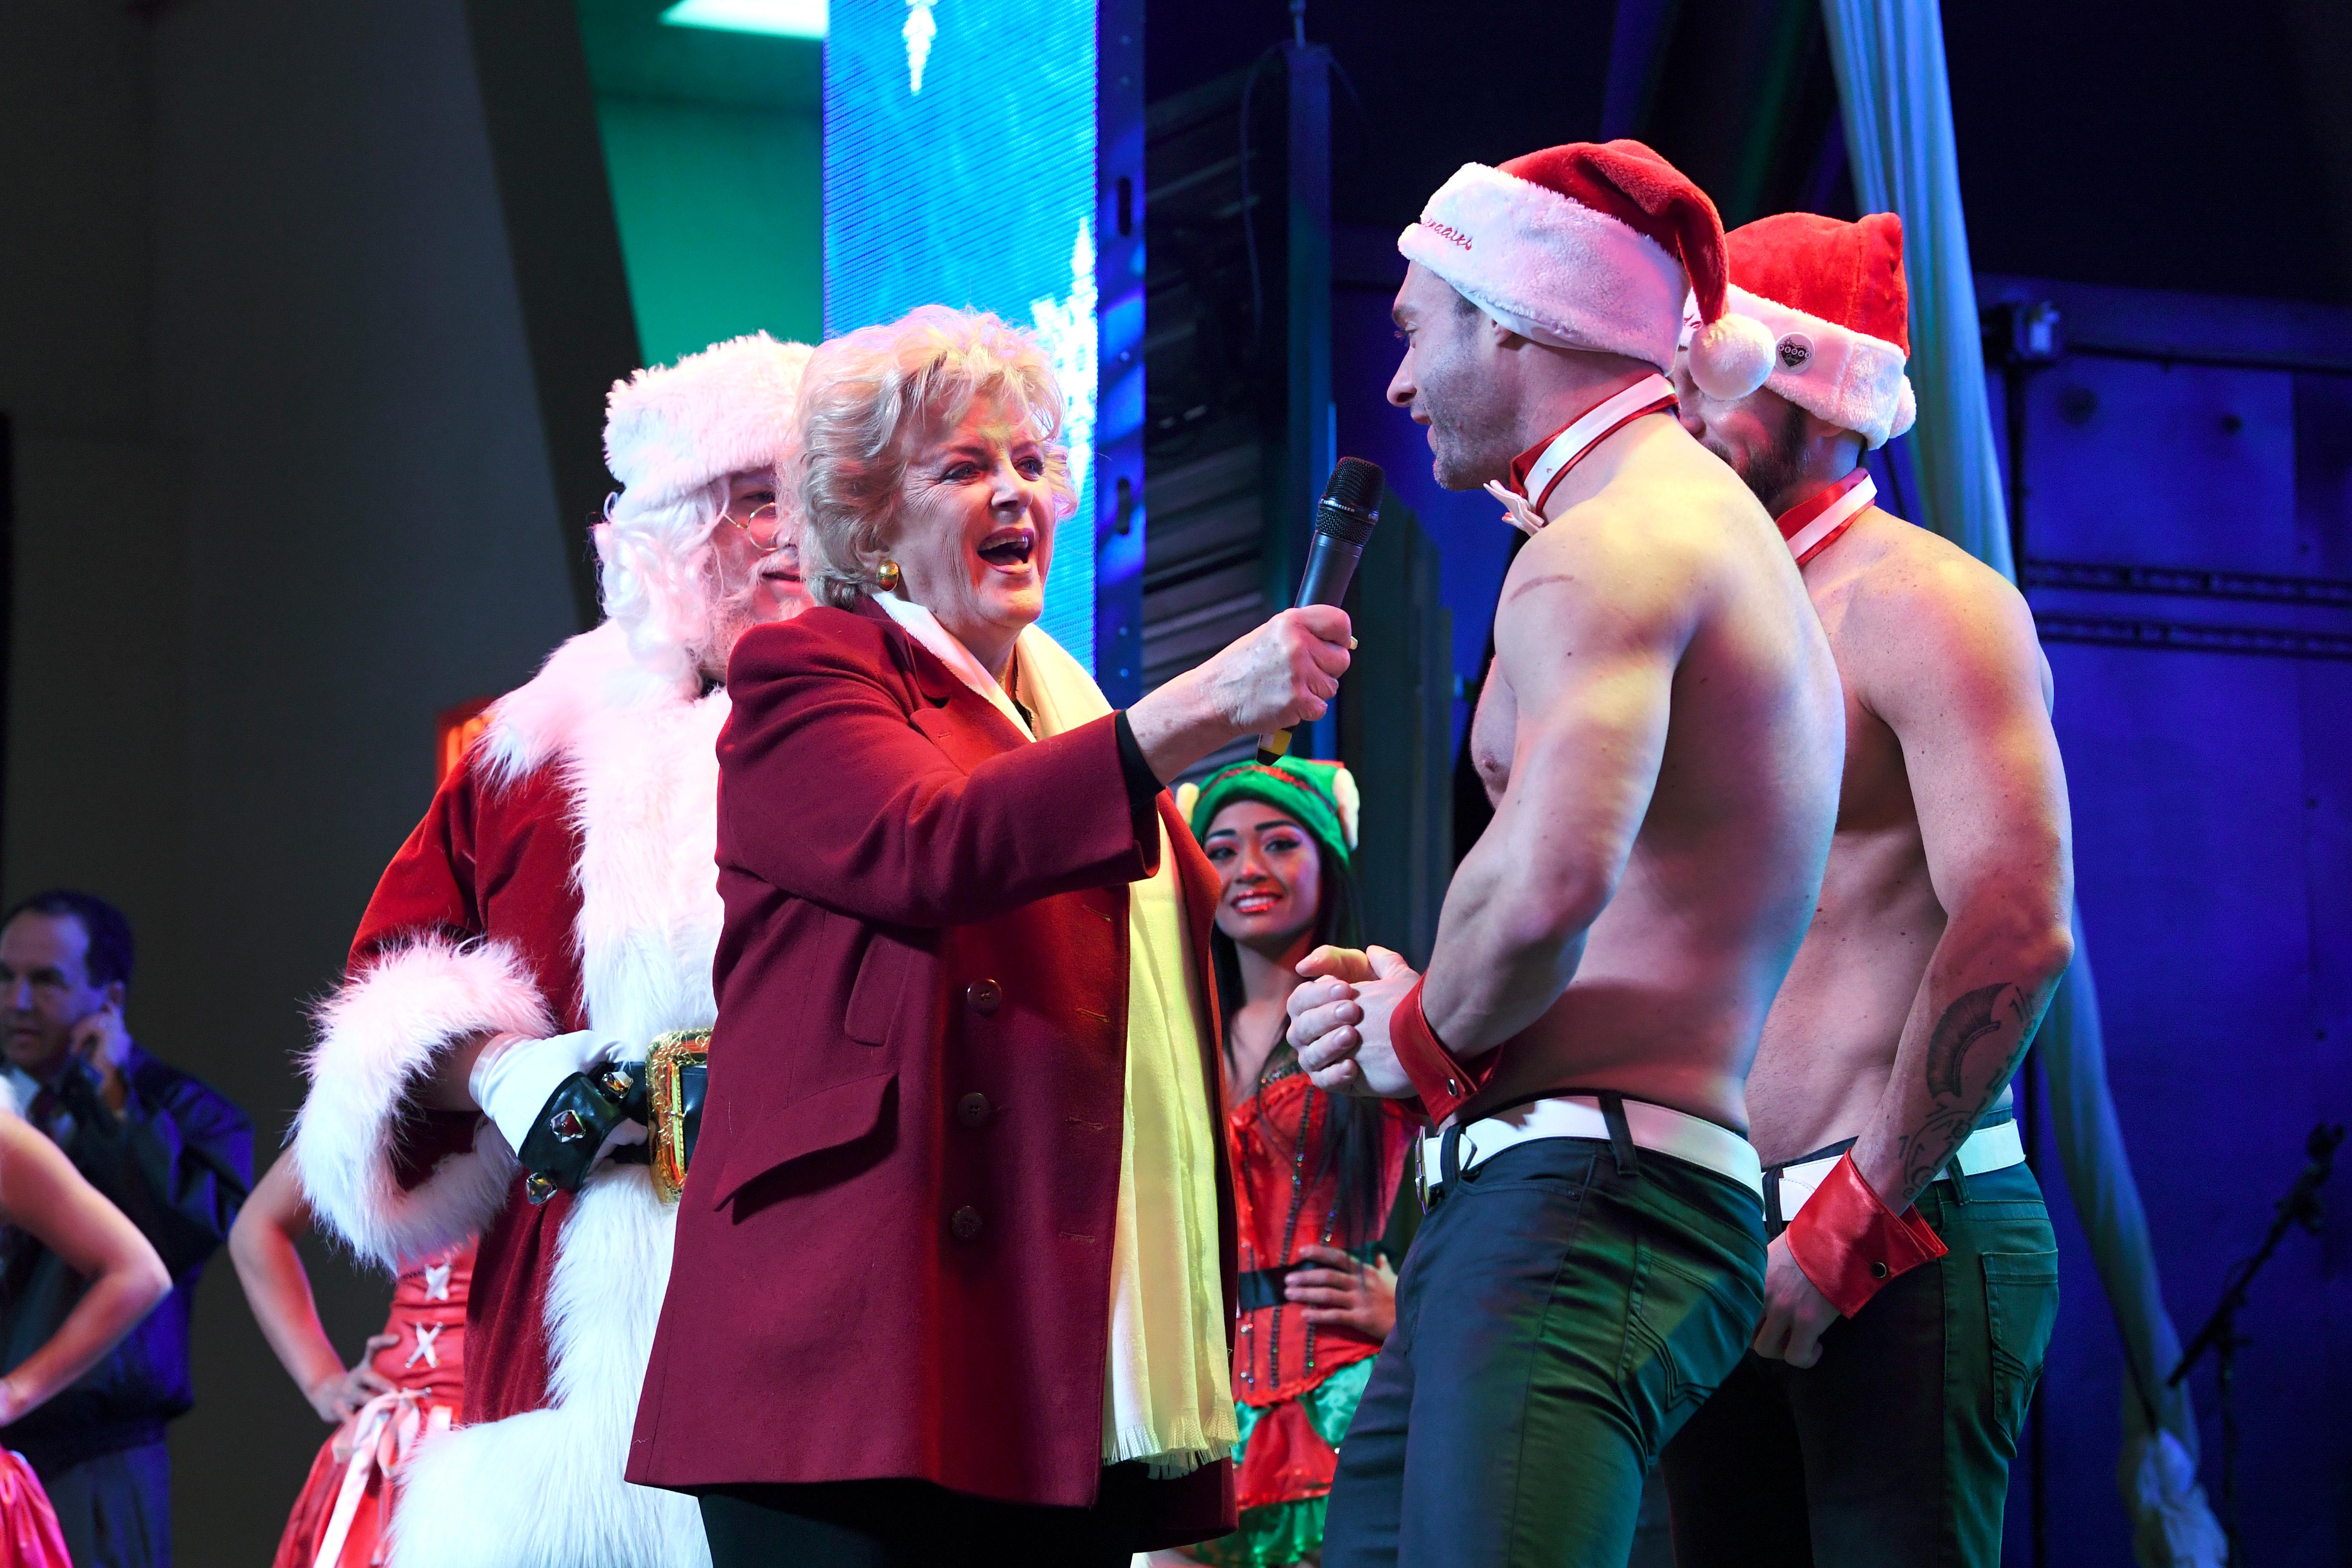 Las Vegas Mayor Carolyn Goodman speaks with a Chippendale dancer during the annual lighting of a Christmas tree at the Fremont Street Experience Tuesday, December 4, 2018. CREDIT: Sam Morris/Las Vegas News Bureau